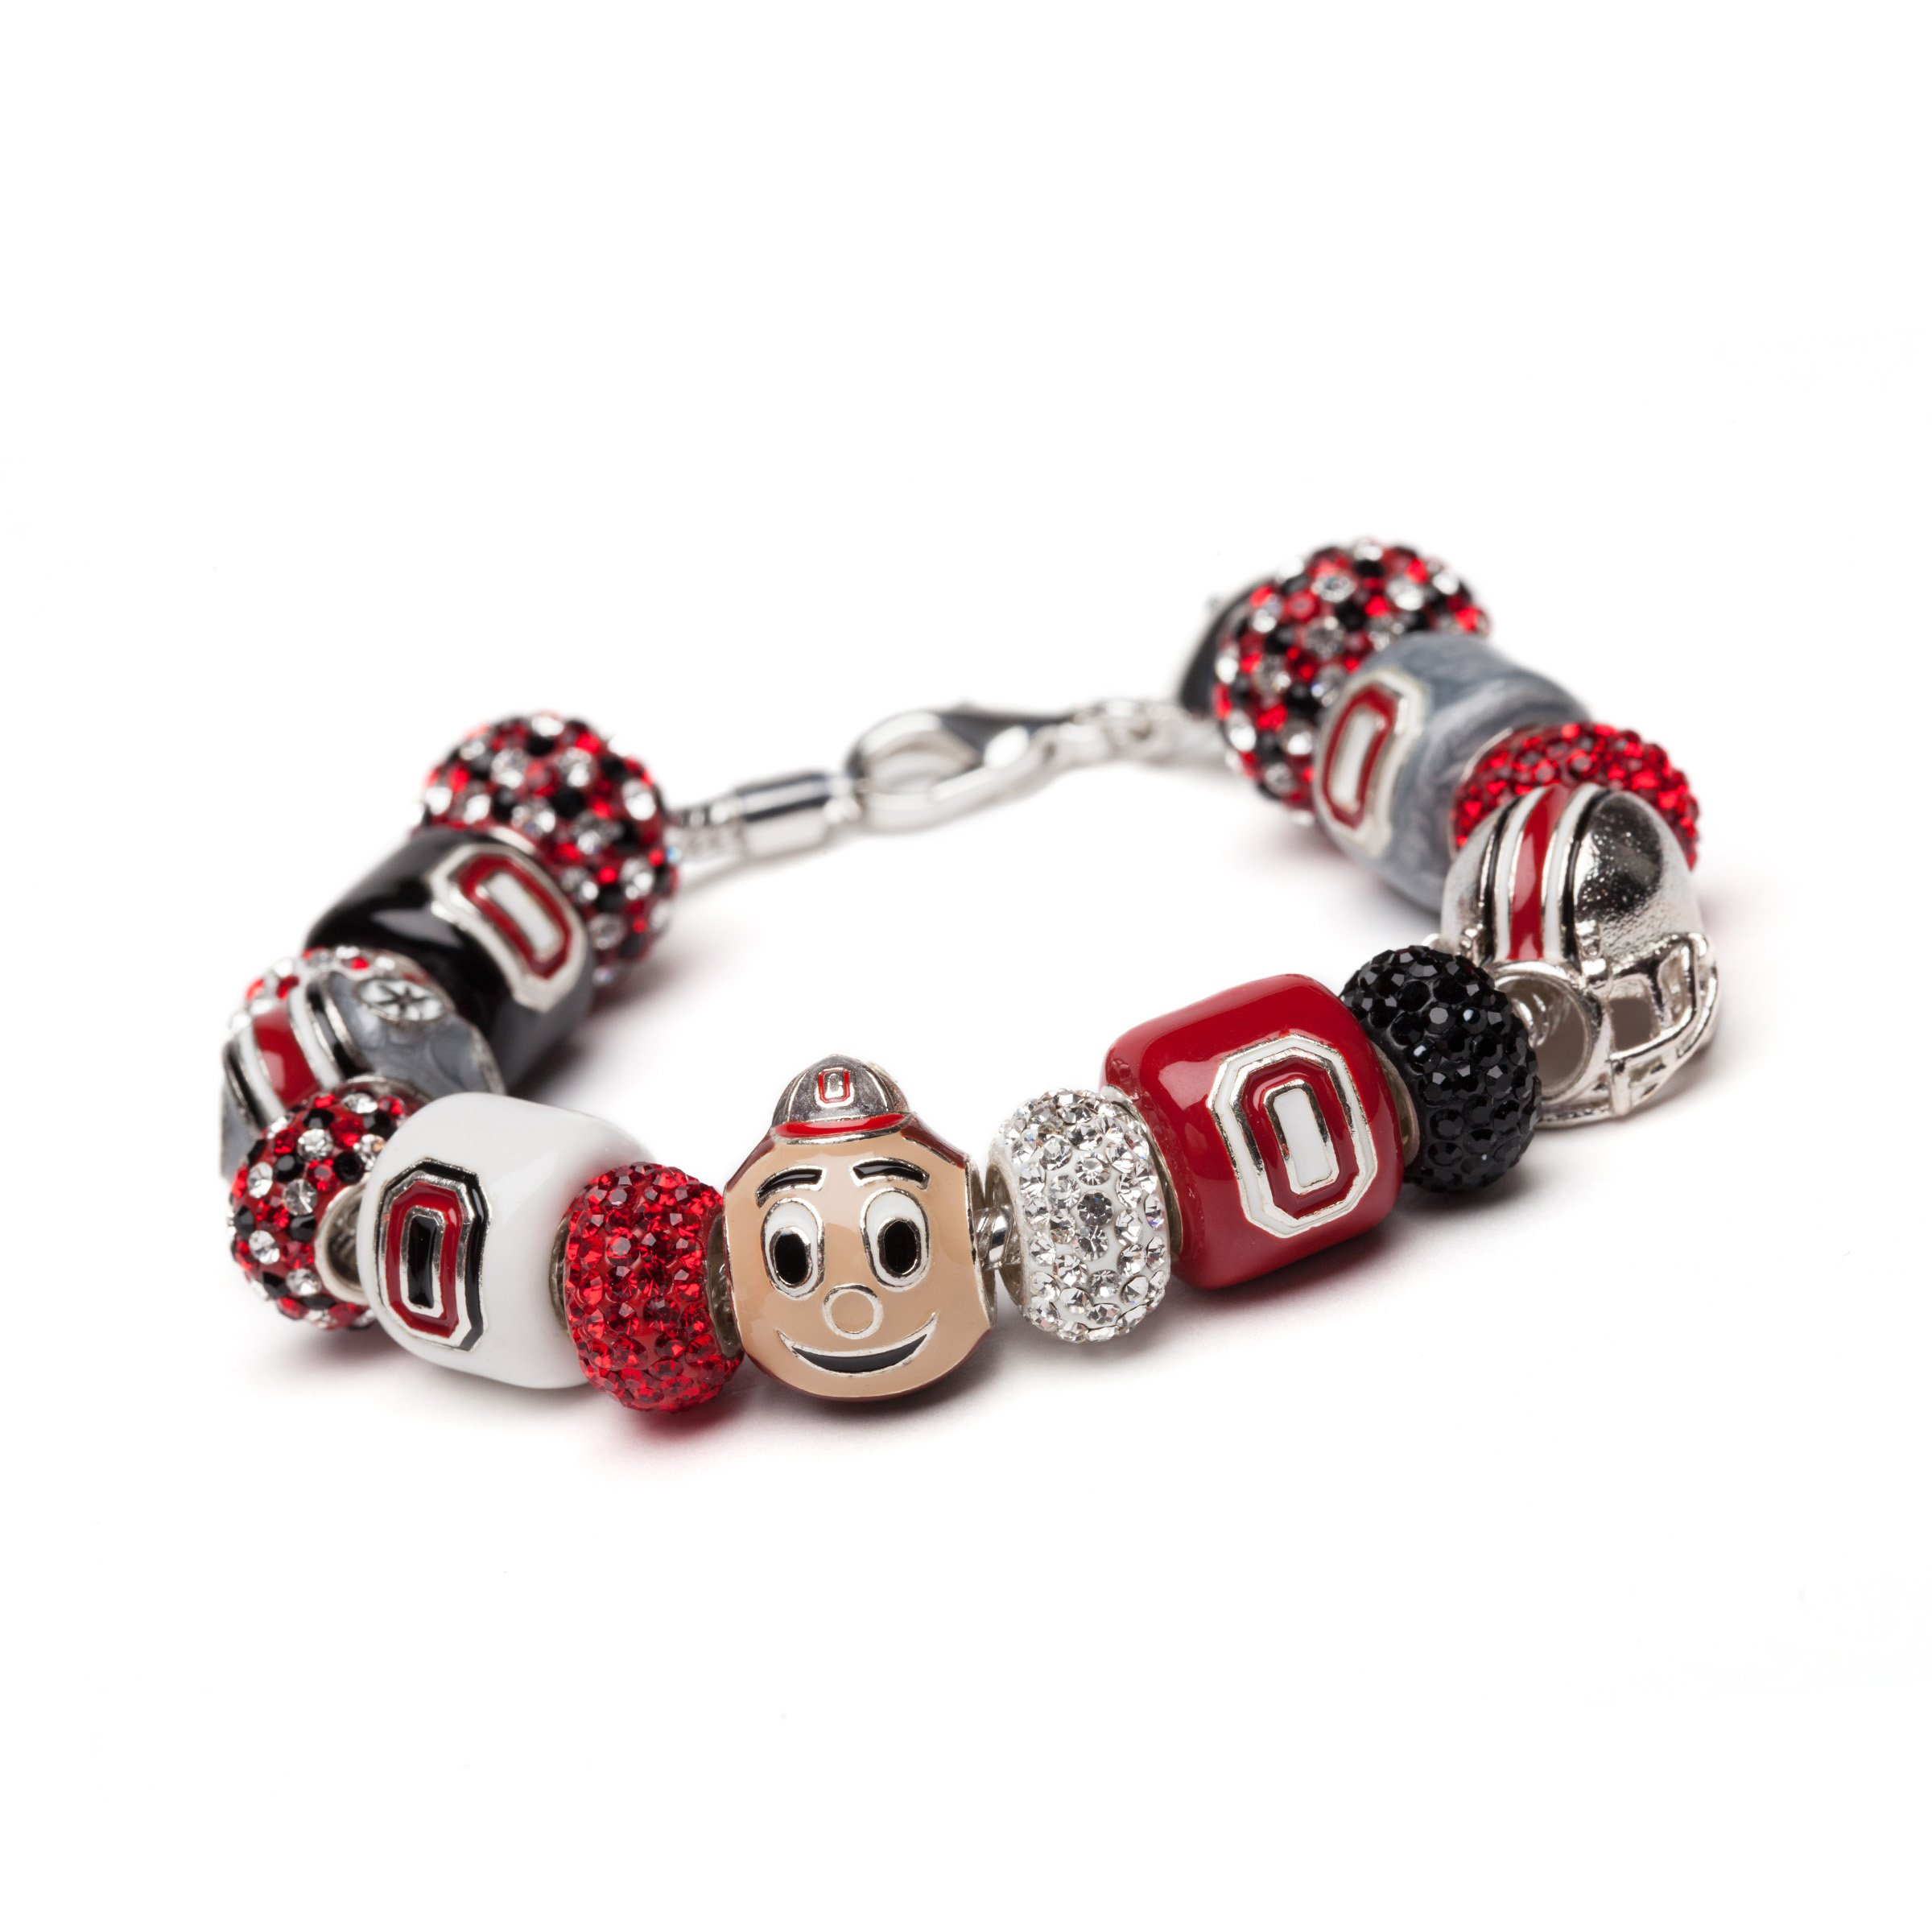 Brutus Buckeye Charm Bracelet | Officially Licensed Ohio State Jewelry